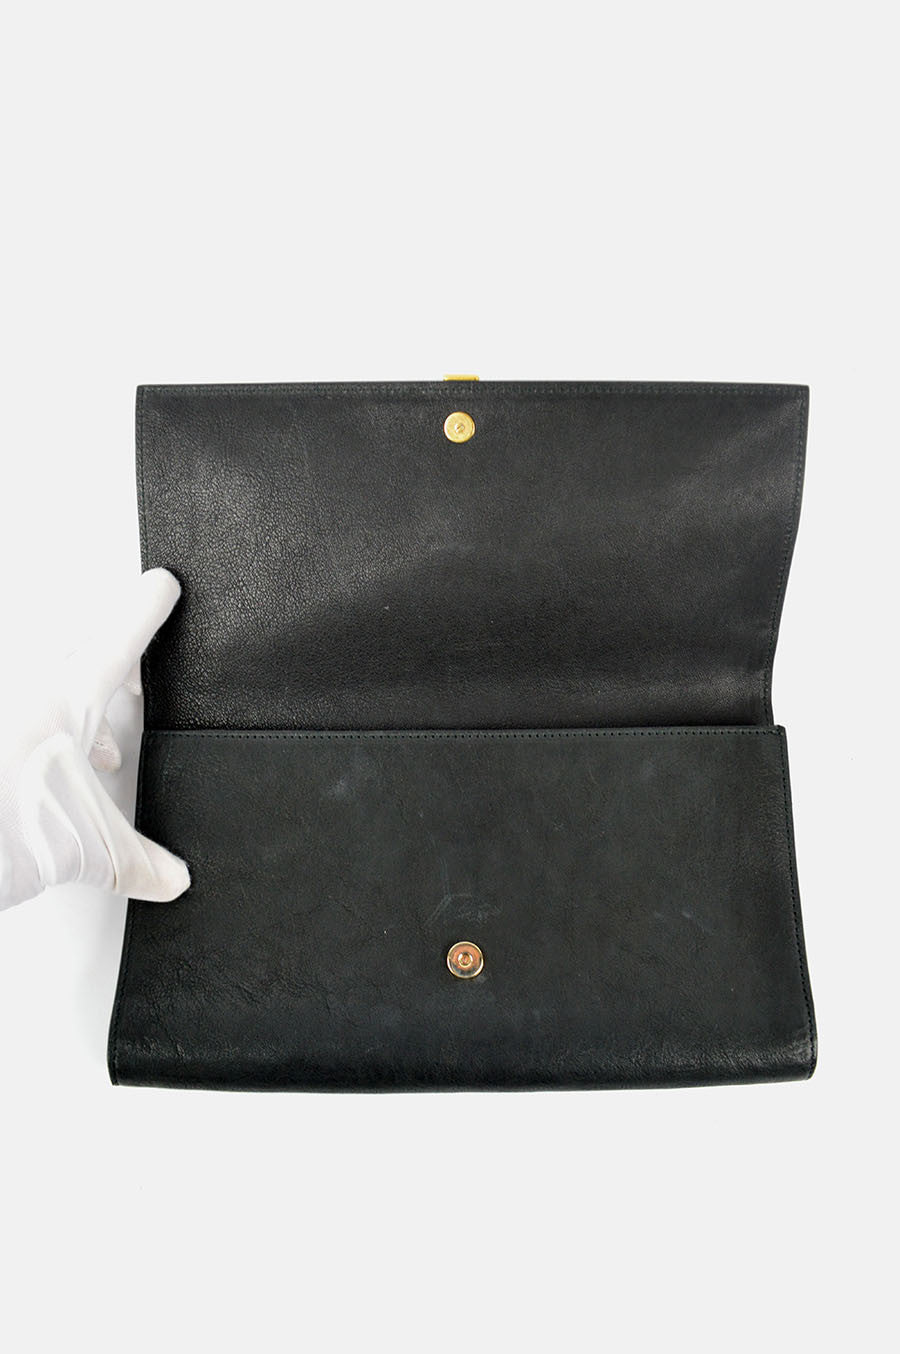 Charcoal Gray Leather Clutch